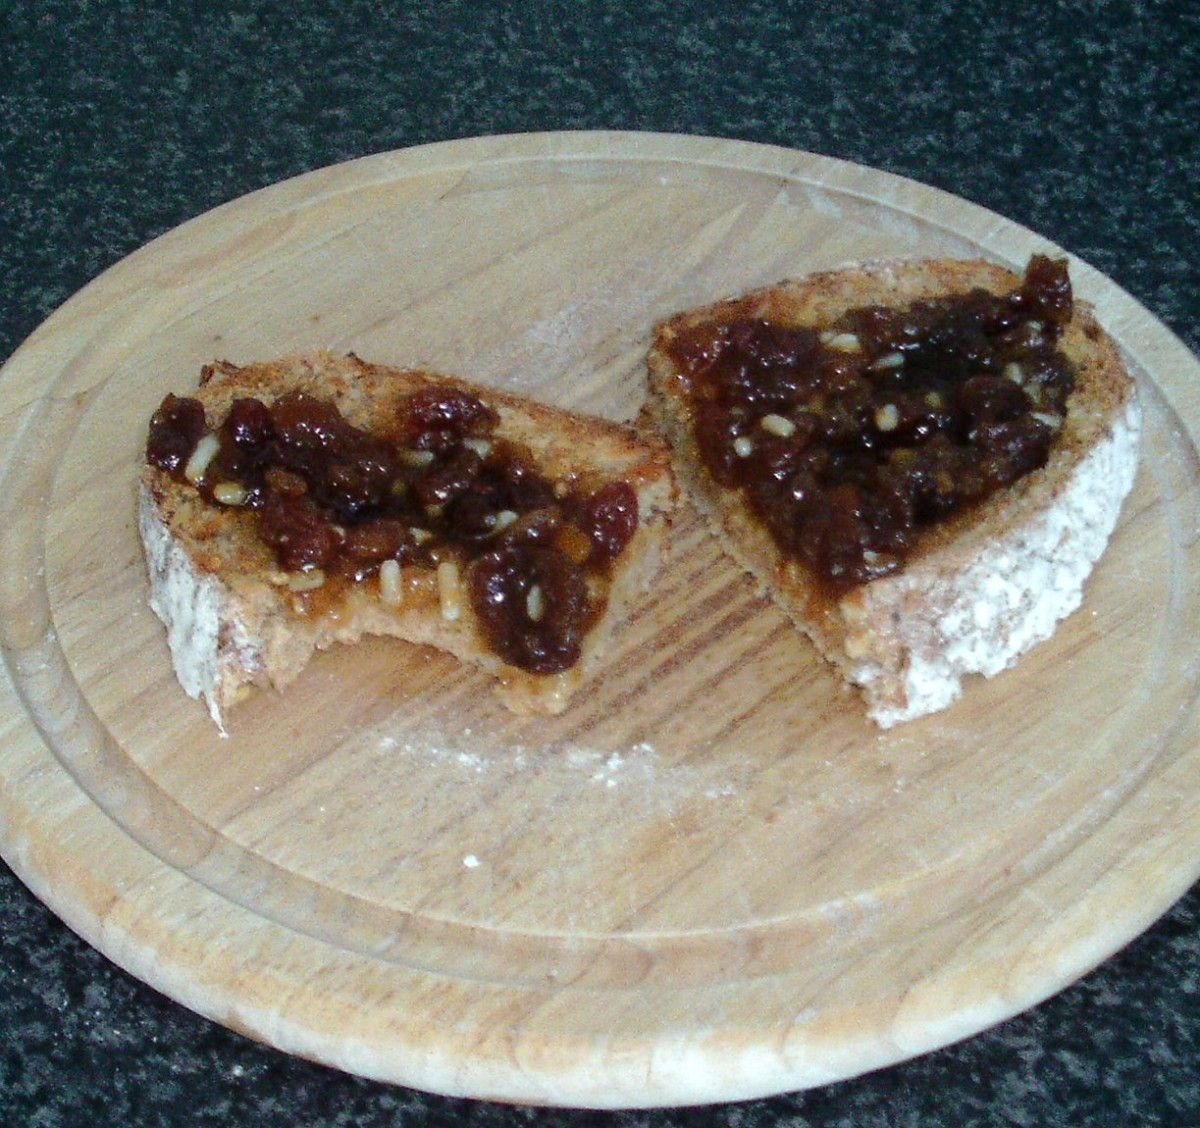 Mincemeat Spread and Enjoyed on Hot Buttered Toast